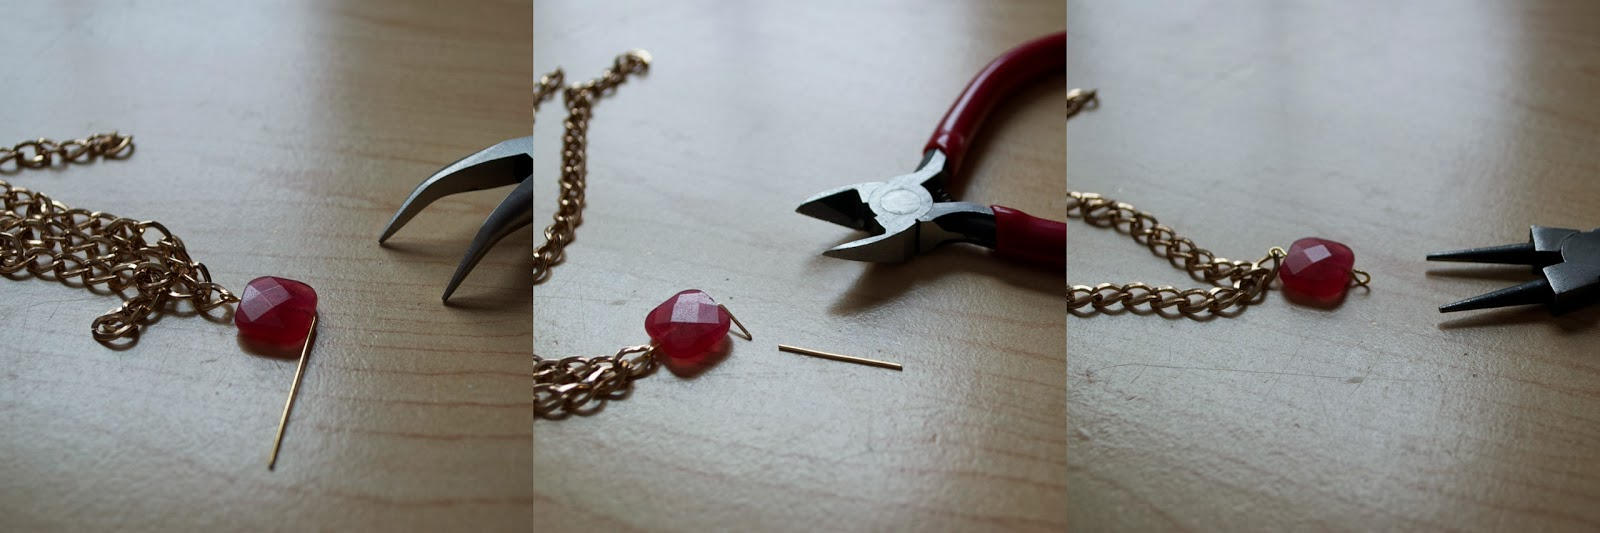 DIY Square Bead and Chain Necklace - My Girlish Whims